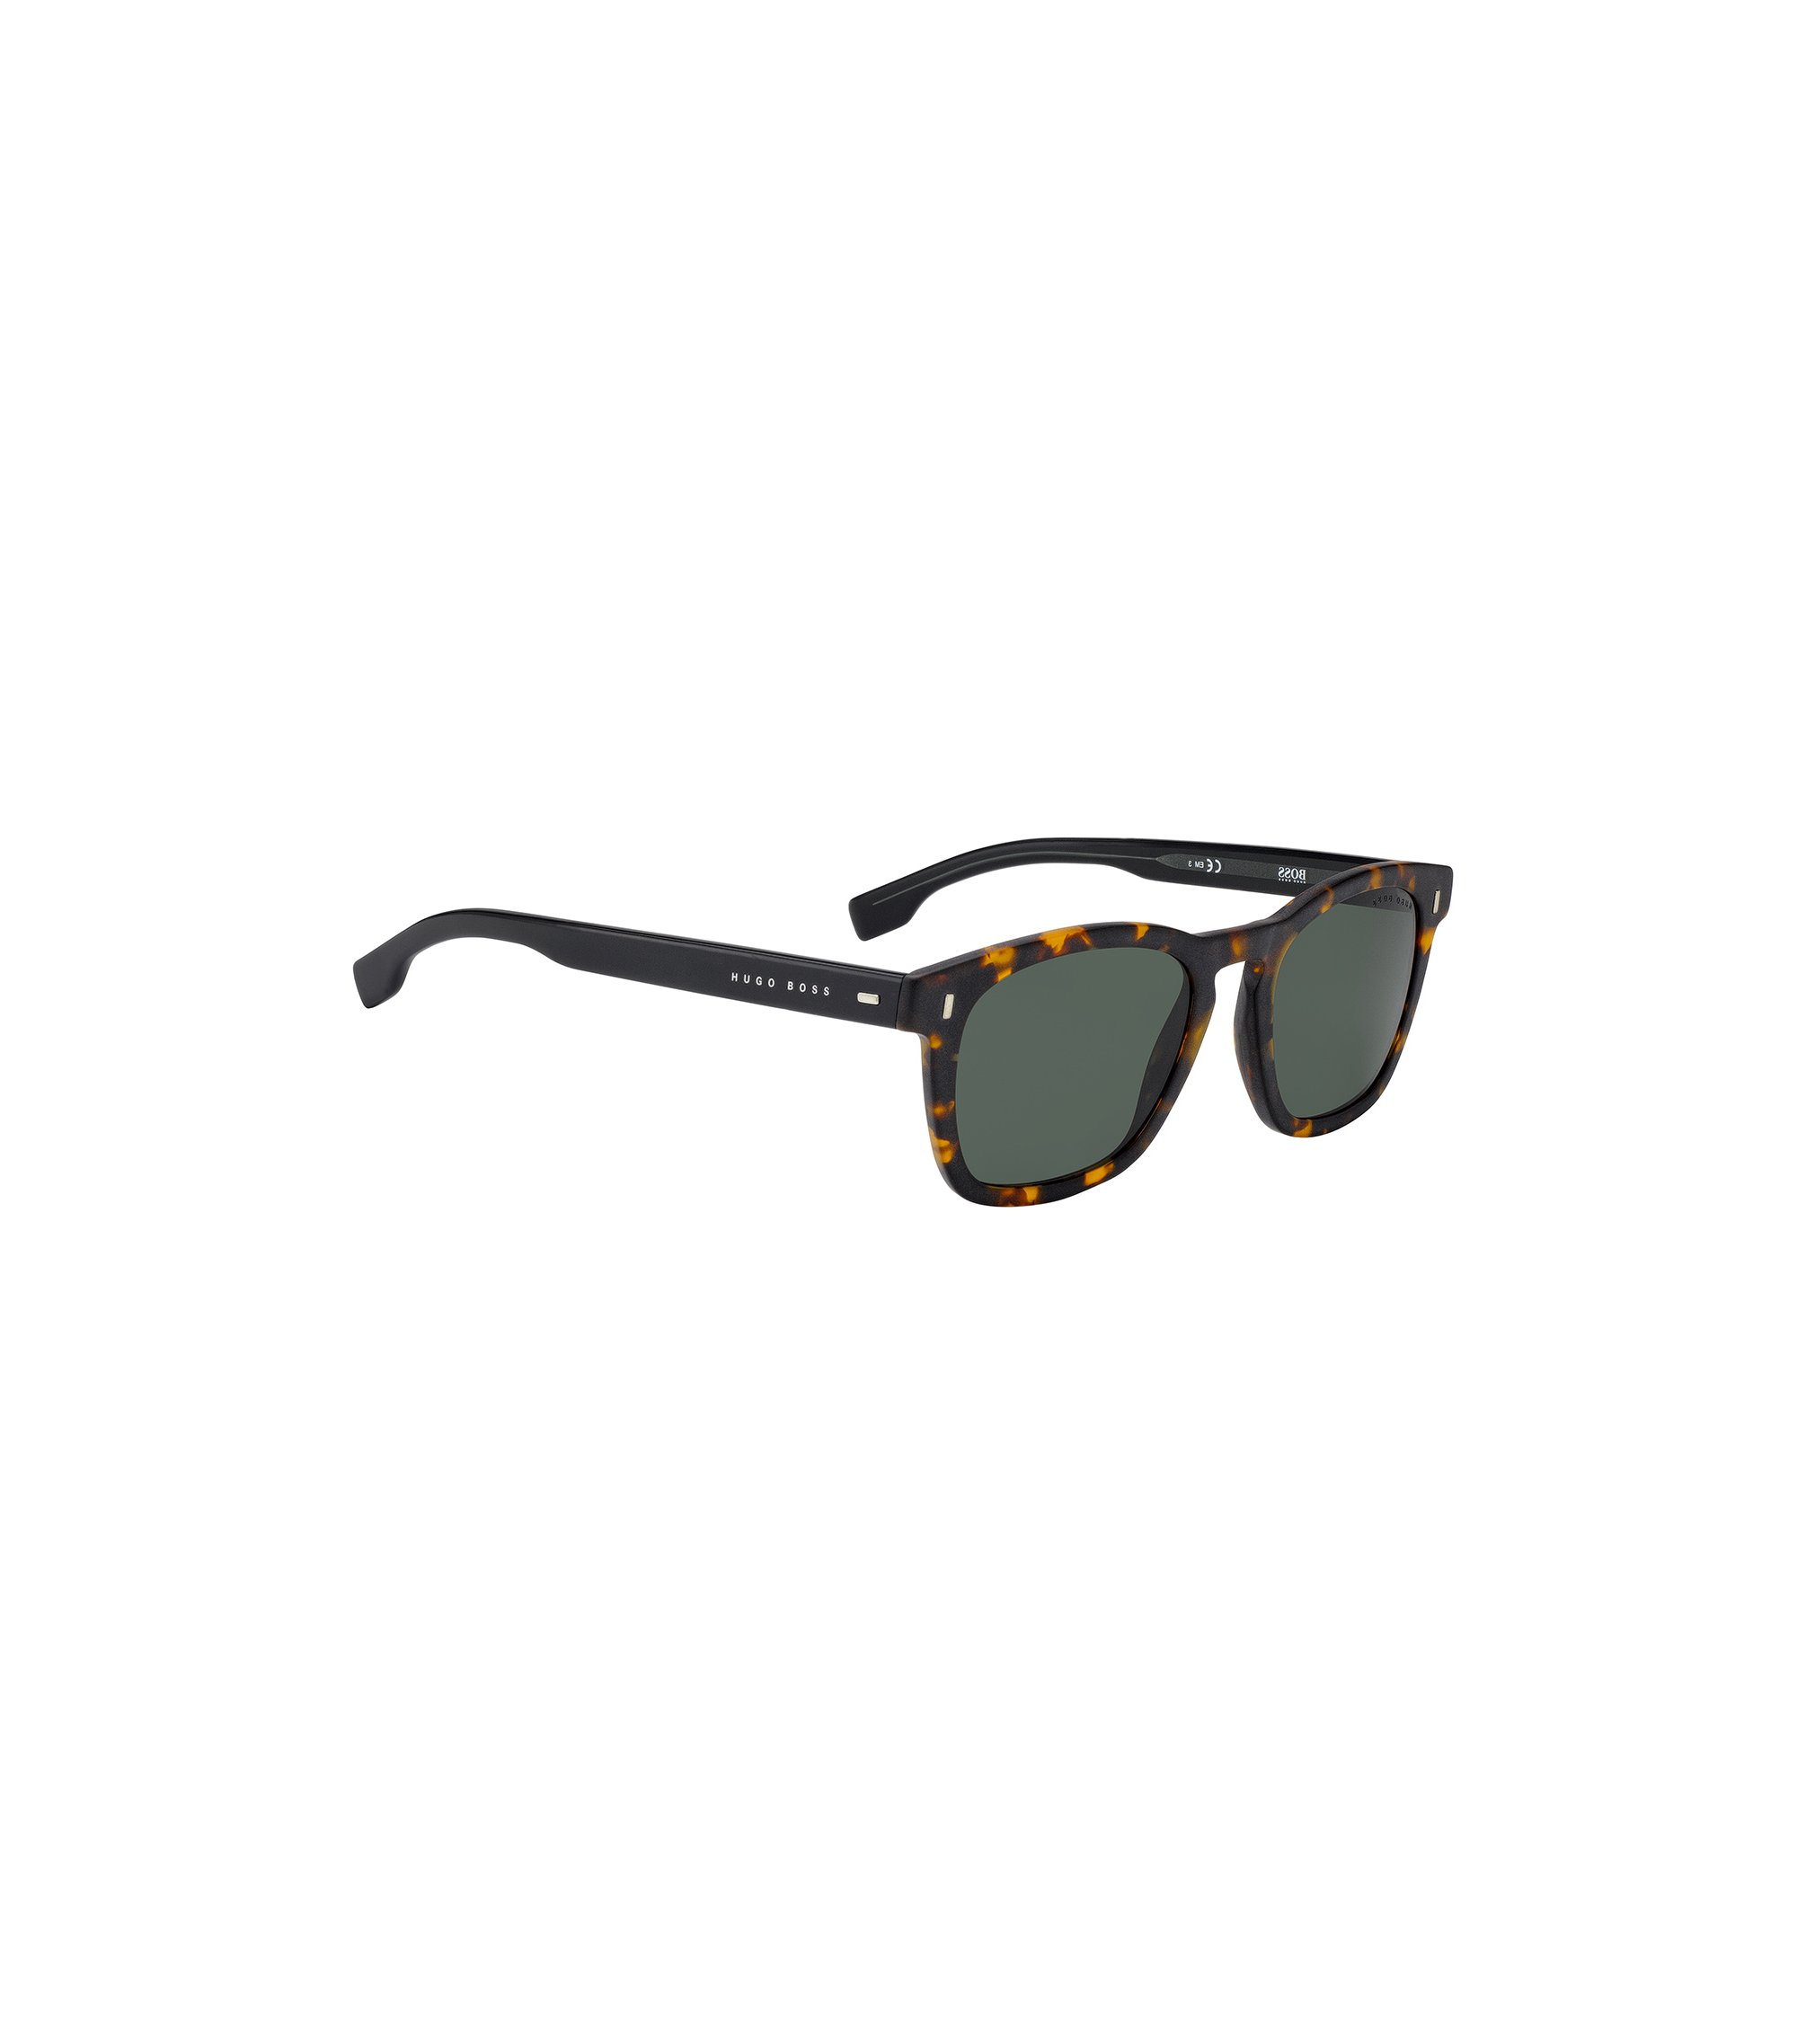 Wayfarer-inspired sunglasses with Havana pattern, Assorted-Pre-Pack